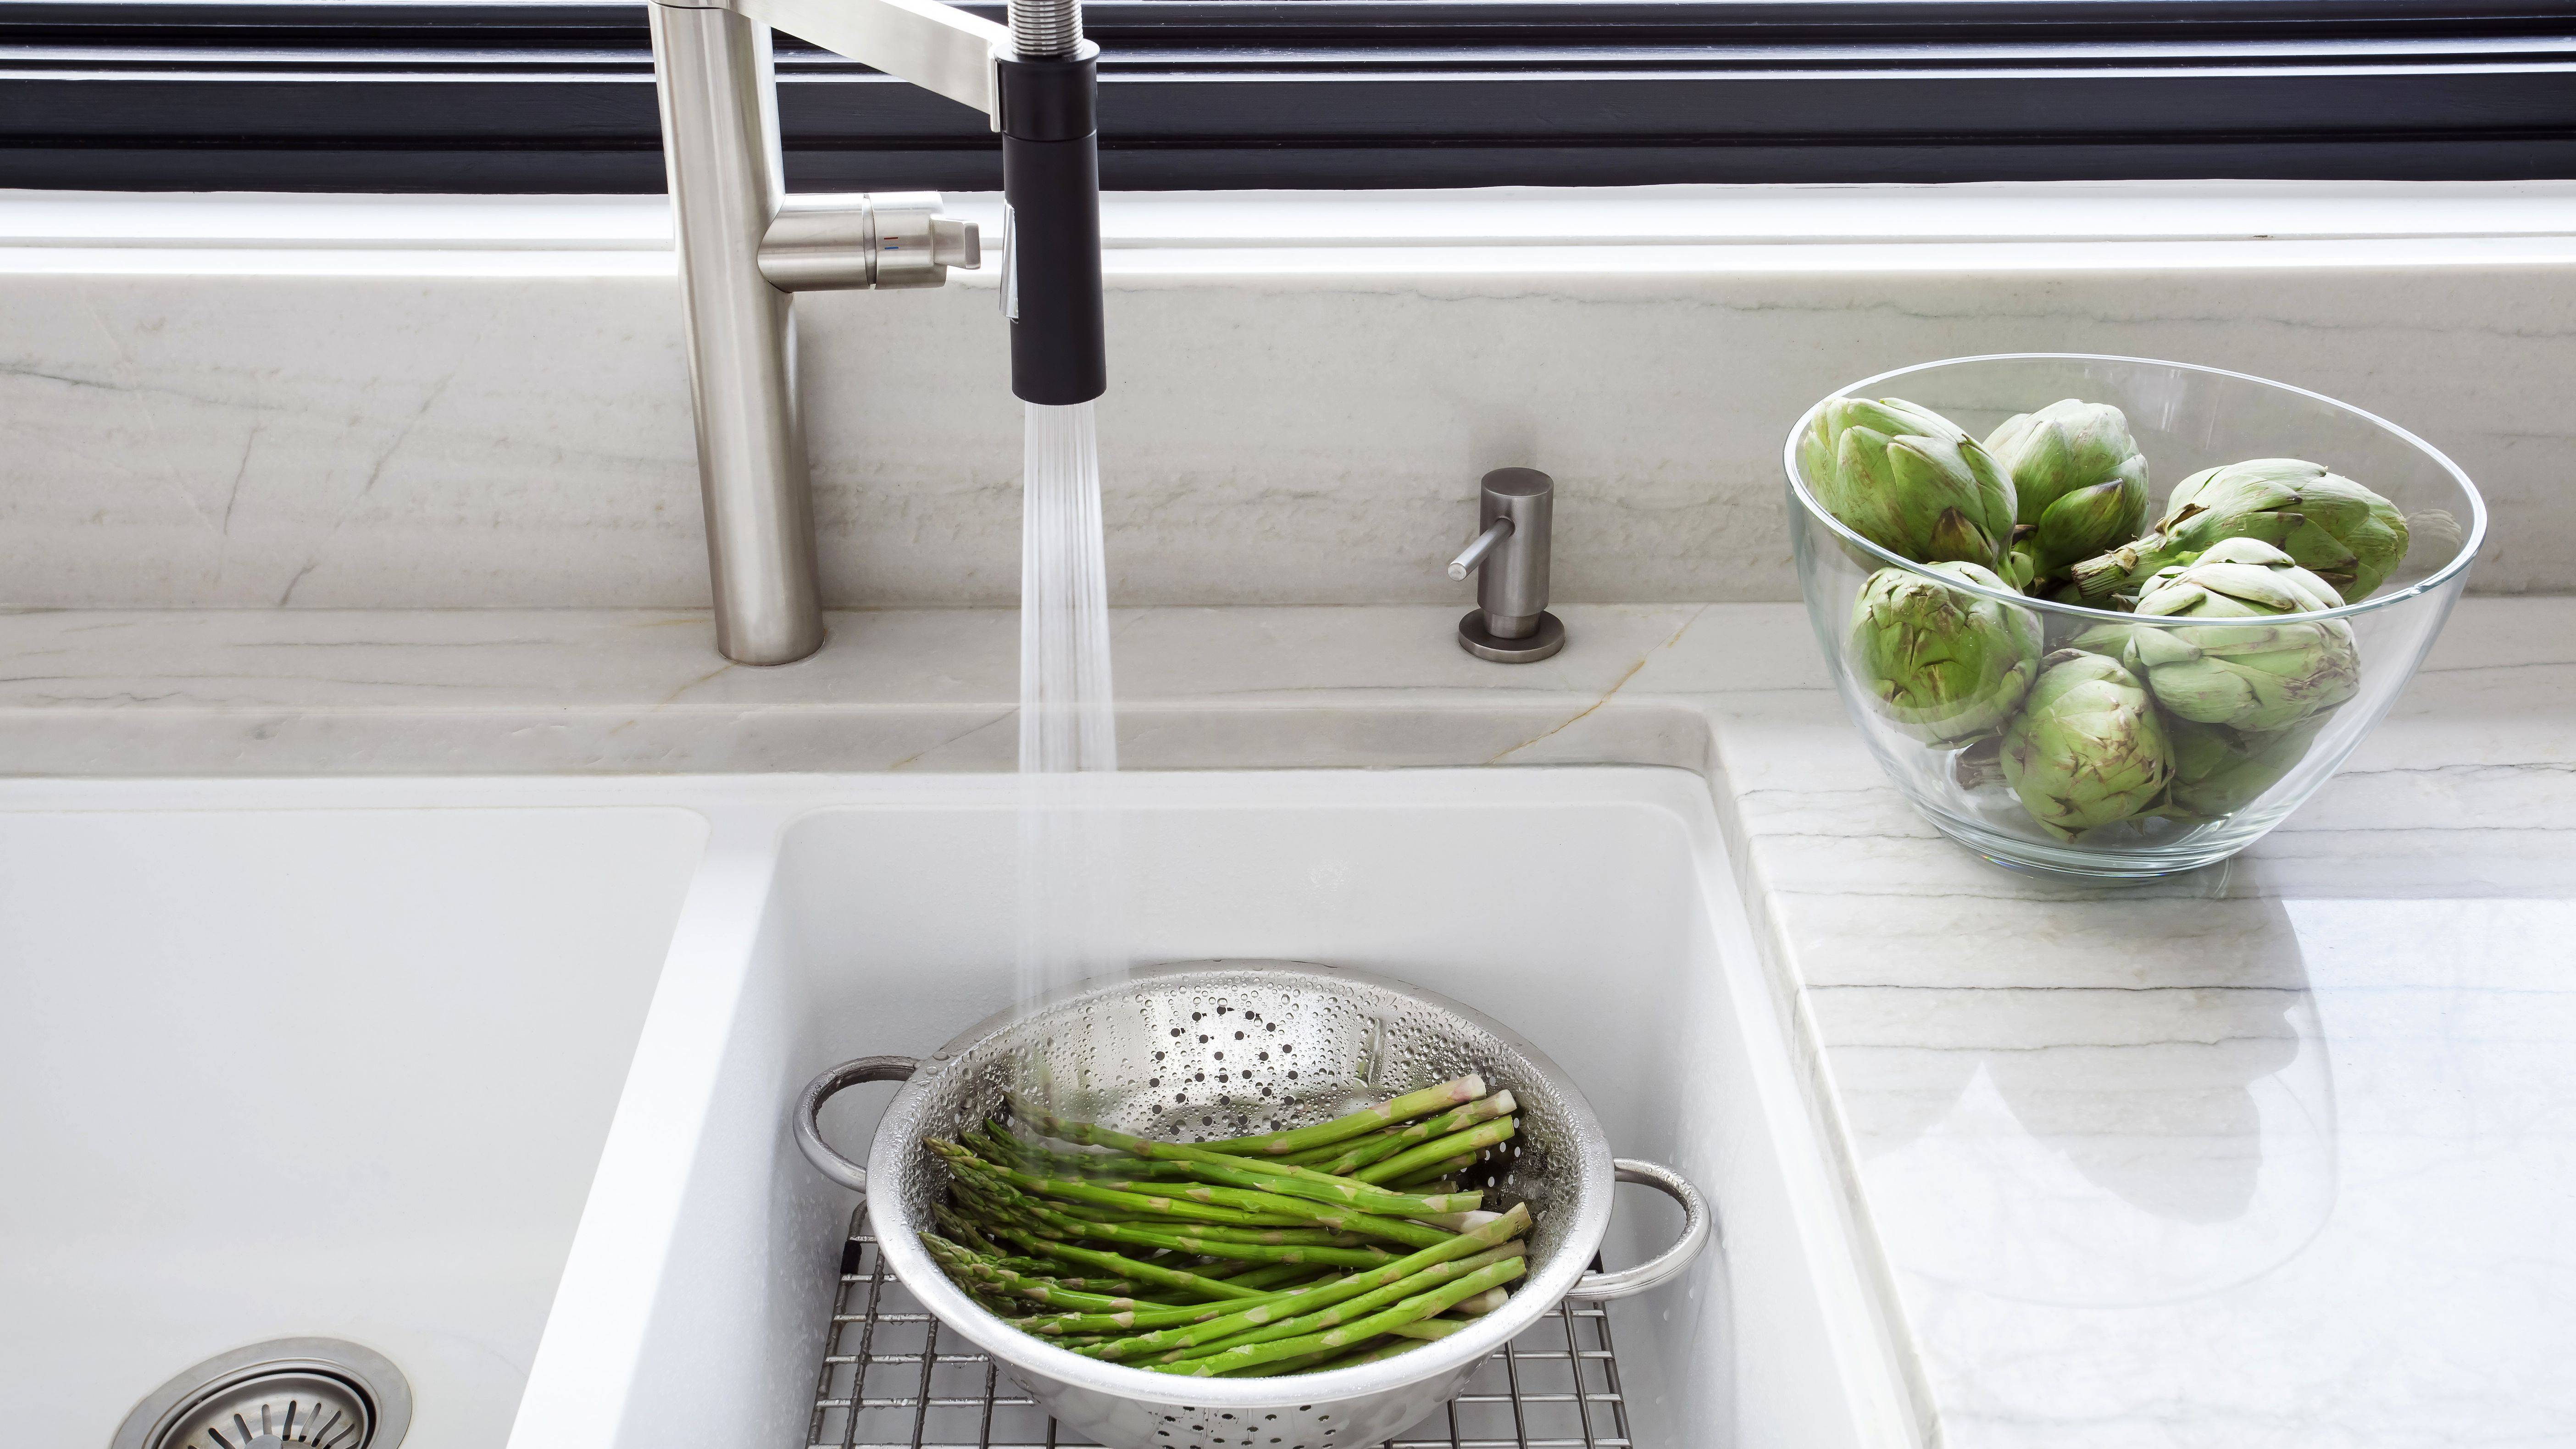 washing fresh asparagus in the kitchen sink 5a ae9ab ee74